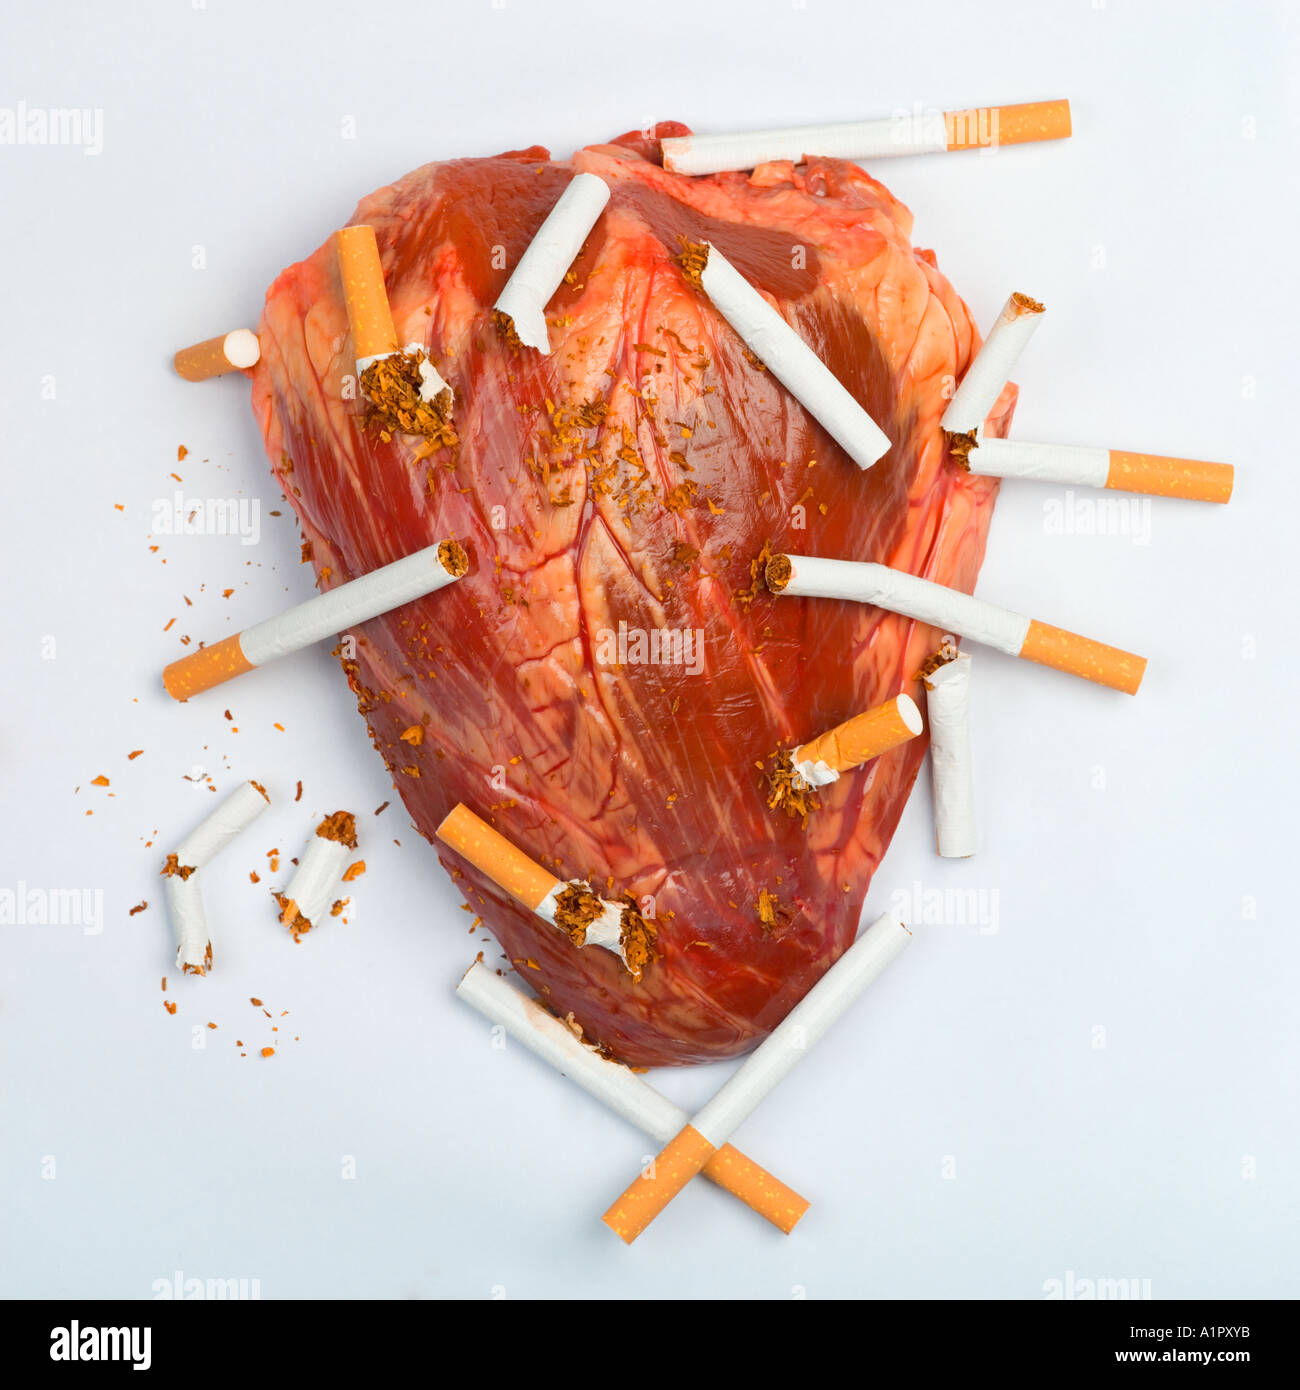 Why Is Smoking Bad For The Heart